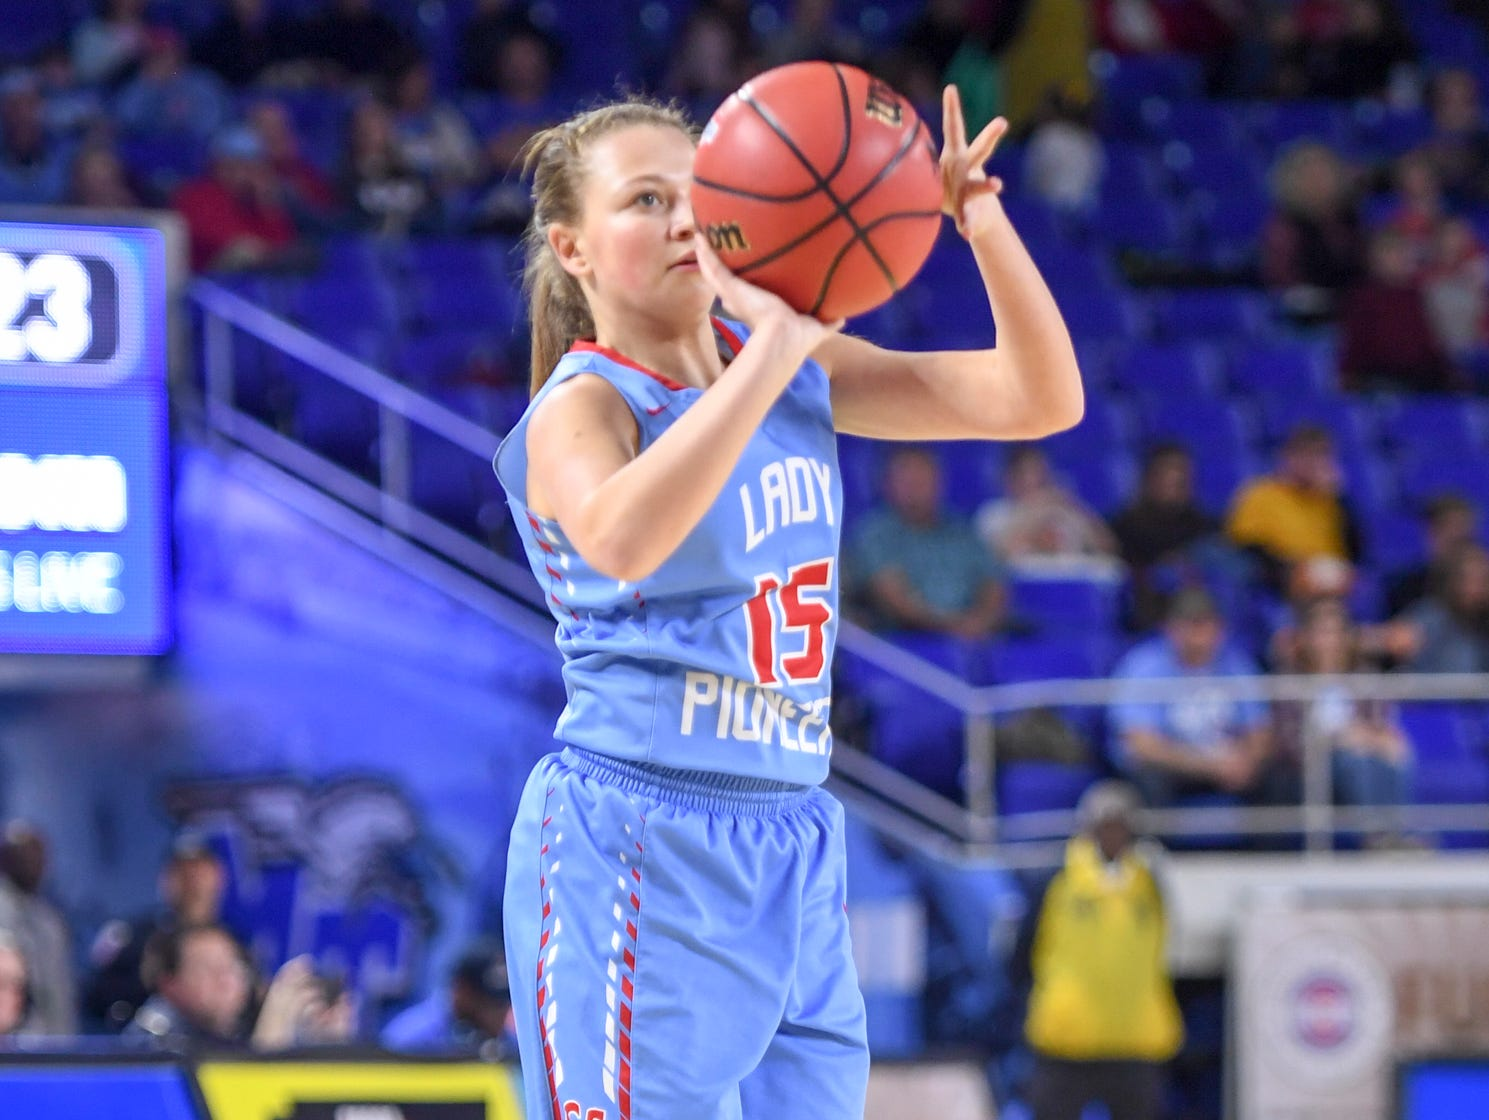 Gibson County's Jaci White (15) pulls up for a three pointer during their Class A semifinal game against Midway, Friday, March 8, 2019, in  Murfreesboro.